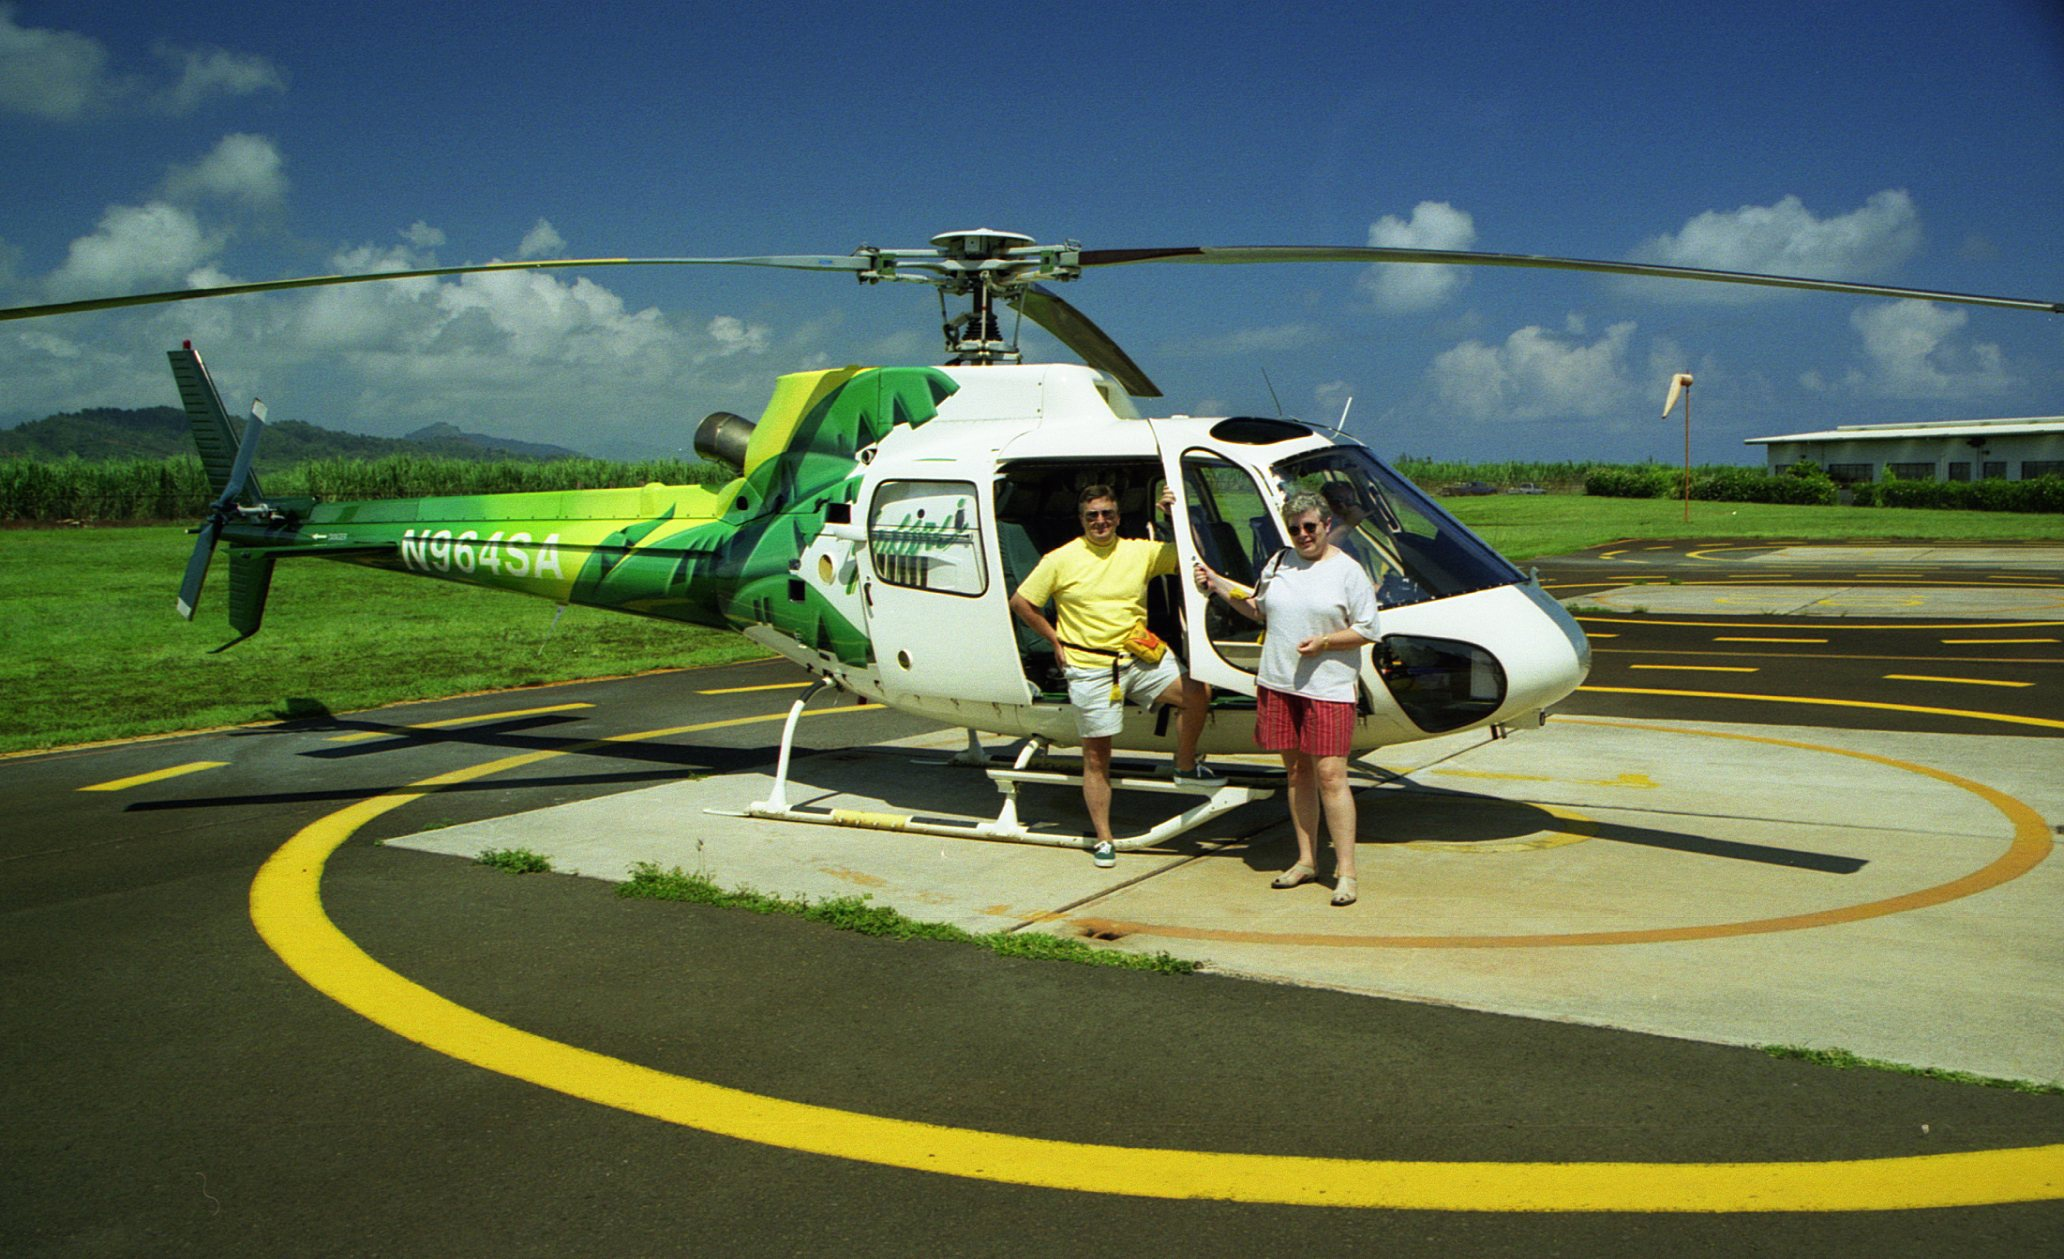 helicopter in flight with File Safari Helicopter For Flight Around Kauai   Flickr   Exfordy on File Mi 8MTV Mexico 2005b1 in addition File SH 60 Sea Hawk Anti Submarine Helicopter Squadron nose as well Aviation together with File Safari Helicopter for flight around Kauai   Flickr   exfordy furthermore 5091900596.